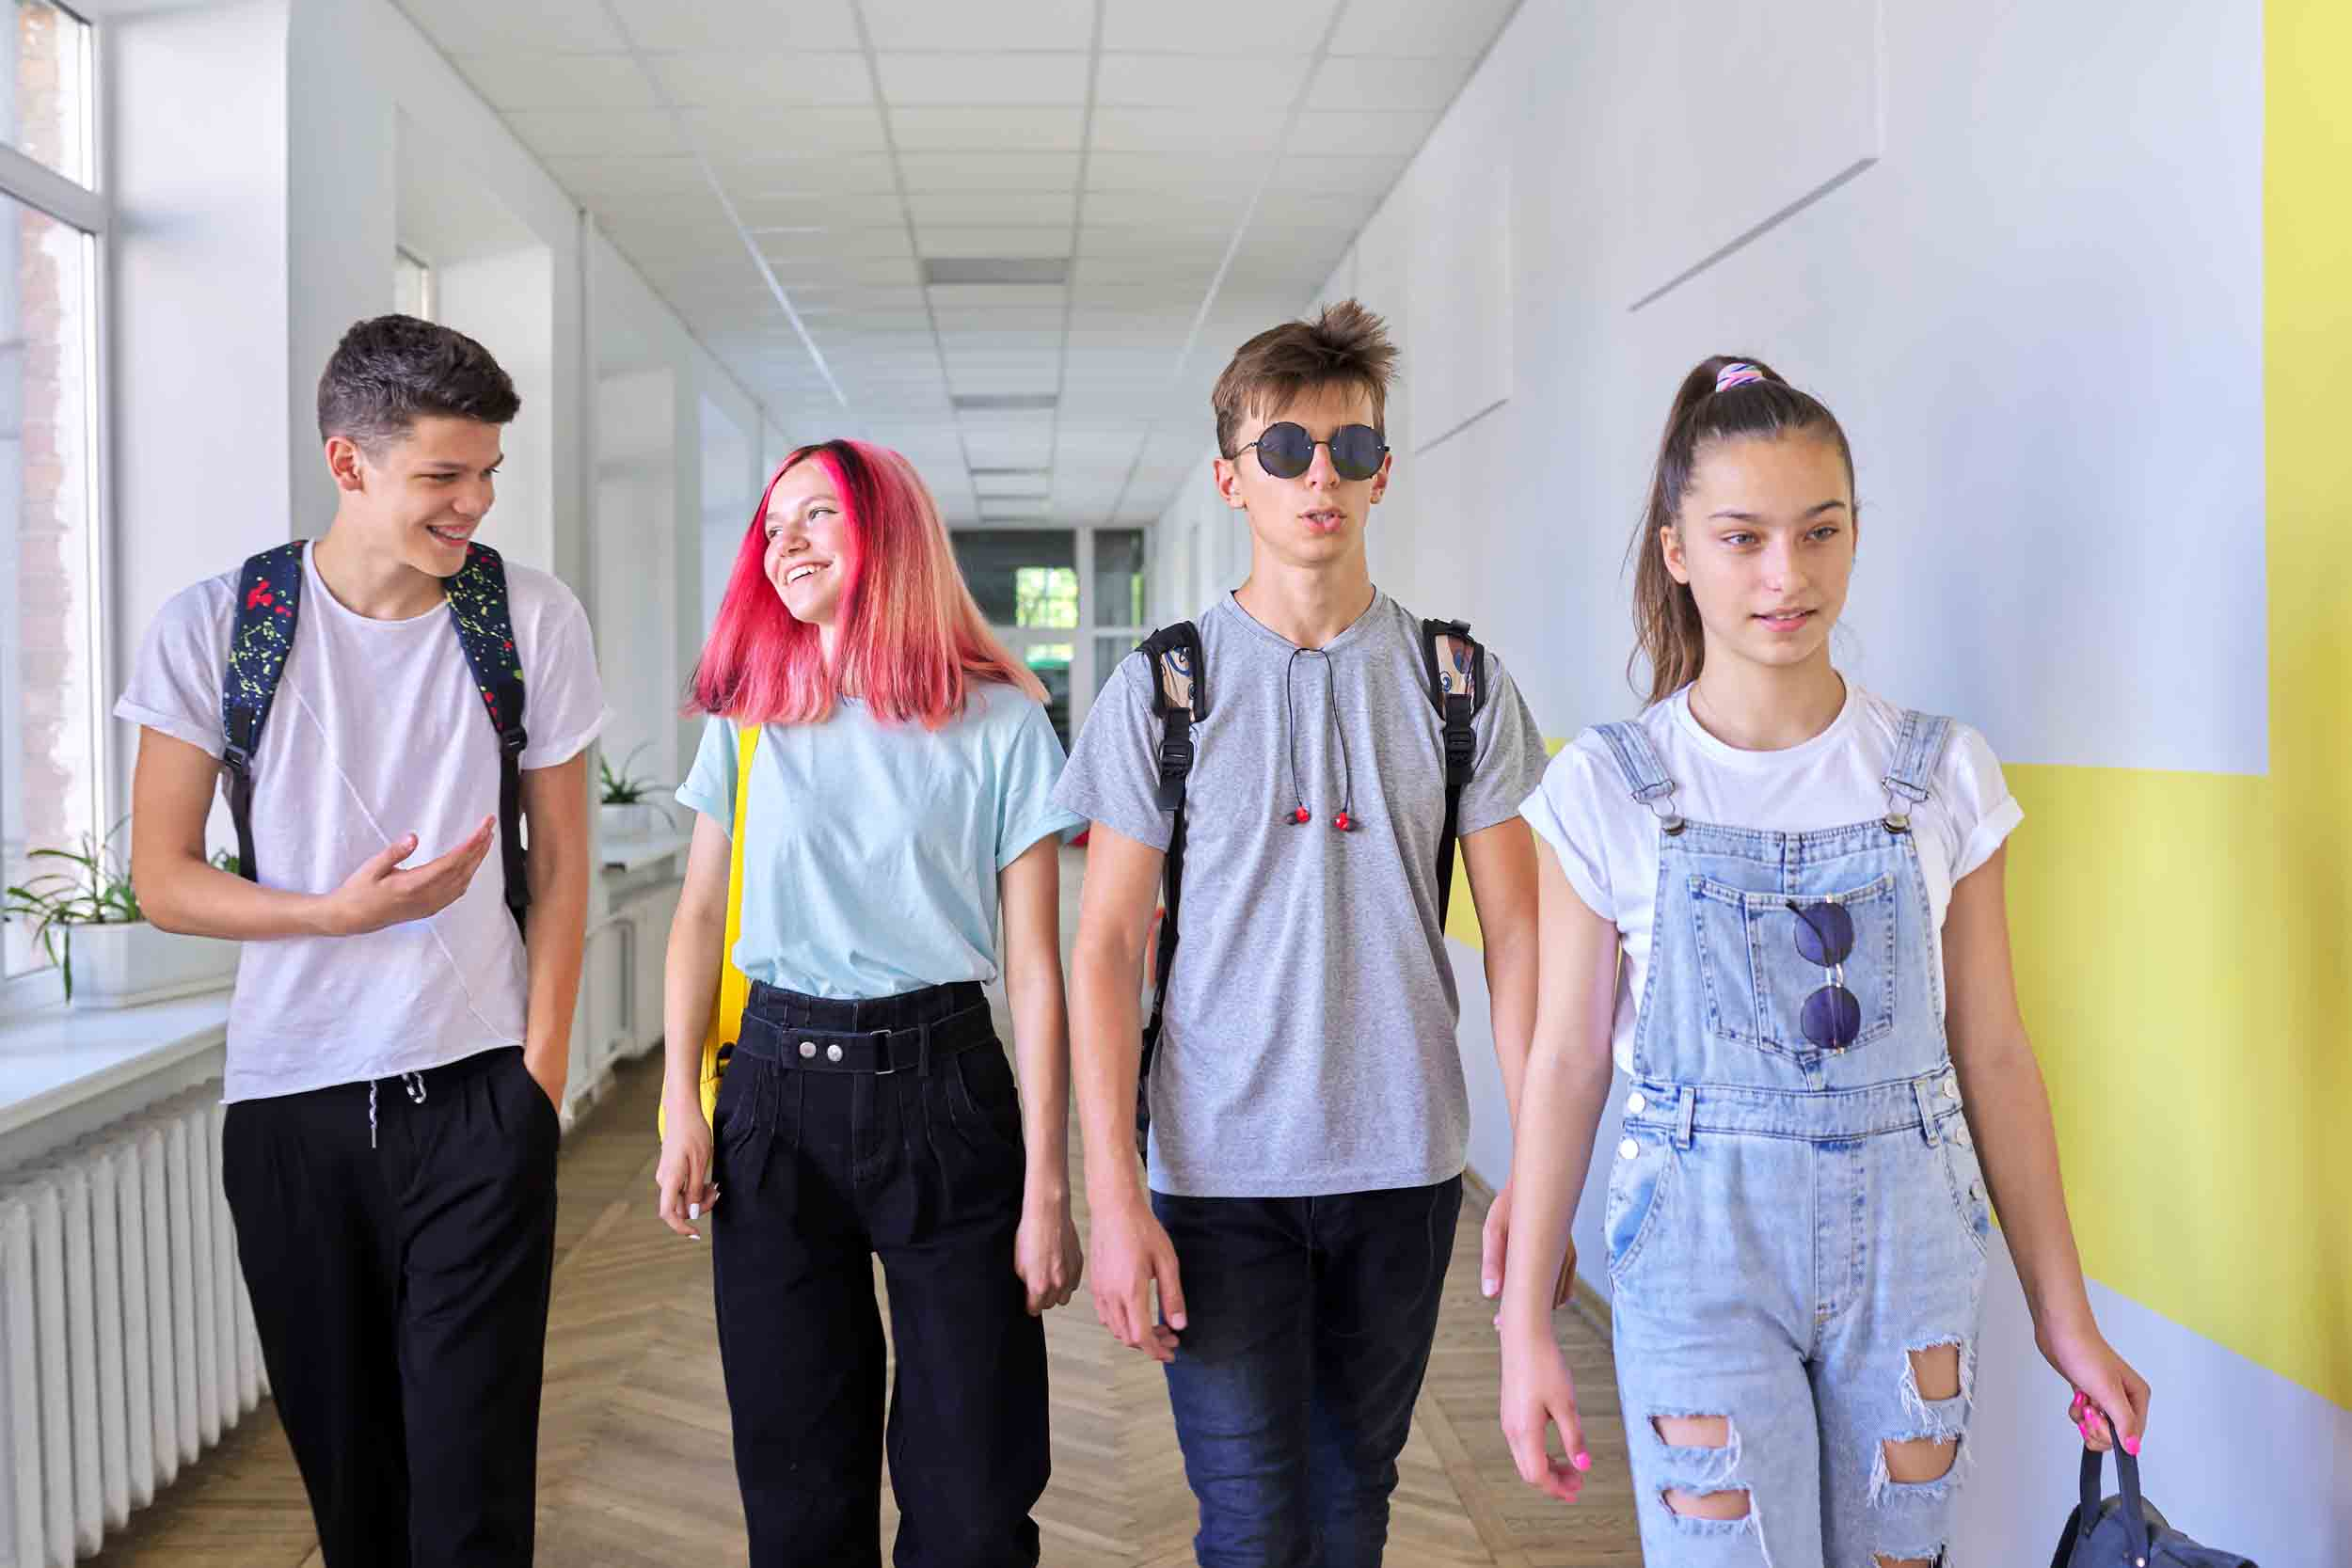 Group of teenage students walking together along school corridor, schoolchildren smiling and talking. Education, high school, adolescence concept